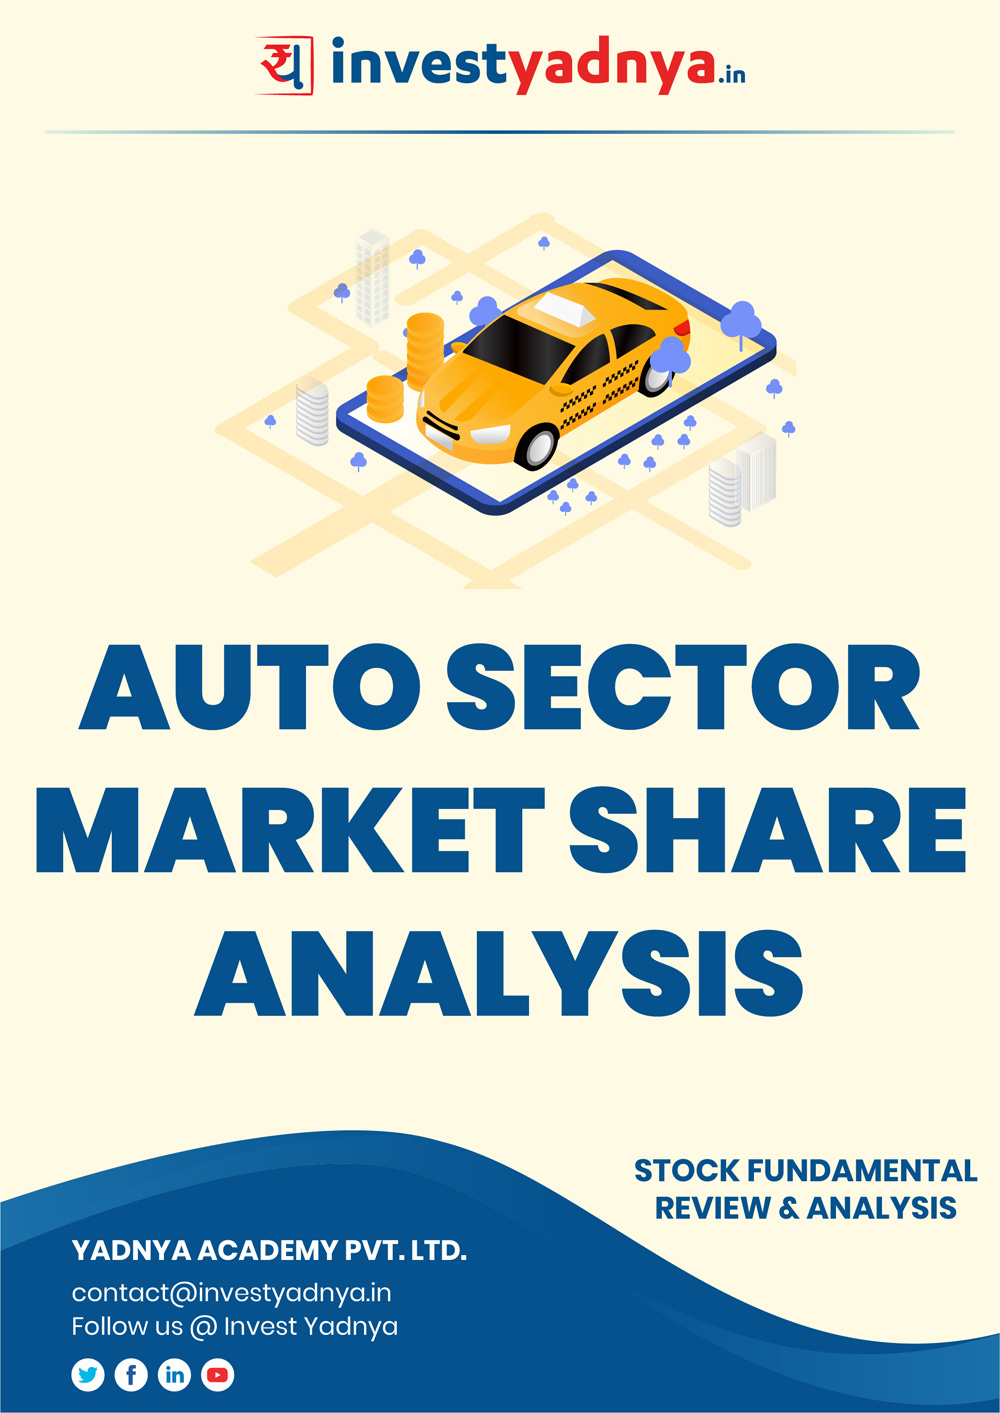 This e-book contains in-depth fundamental analysis of Auto Sector considering both Financial and Equity Research Parameters. It reviews the company, industry, competitors, shareholding pattern, financials, governance and annual performance. ✔ Detailed Research ✔ Quality Reports